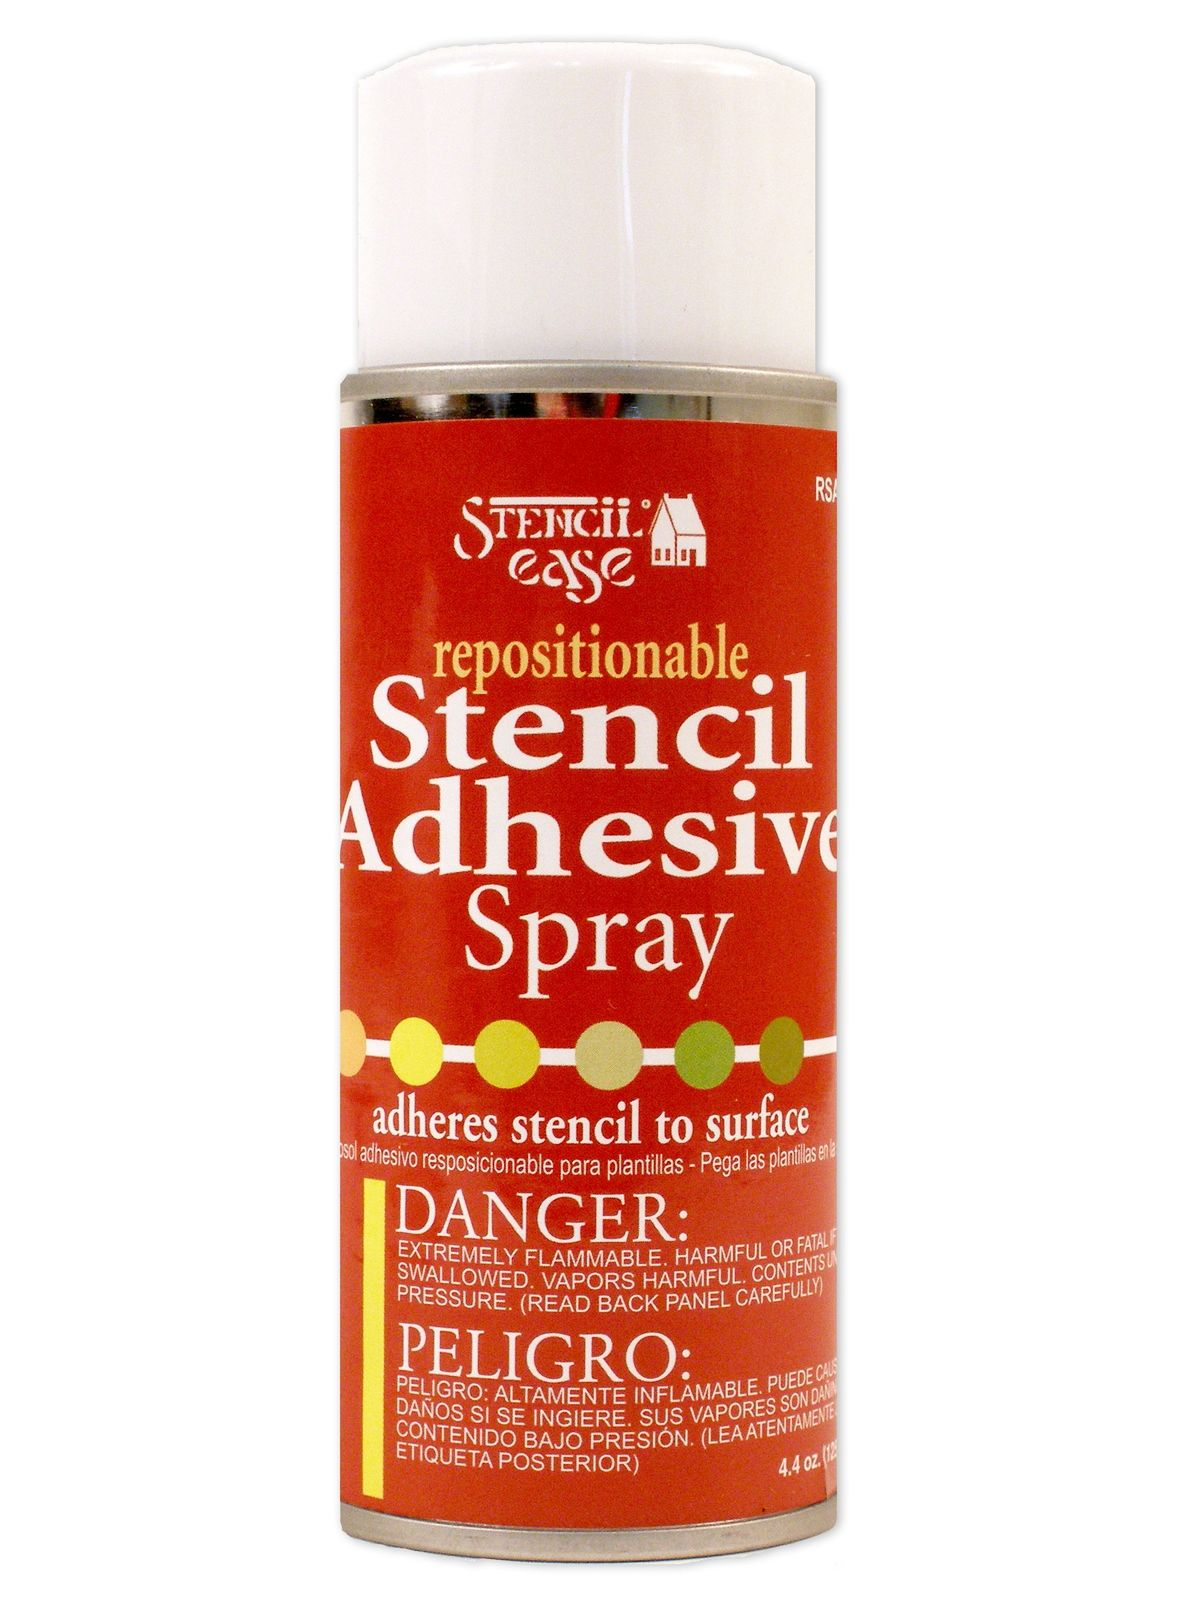 Repositionable Stencil Adhesive Spray